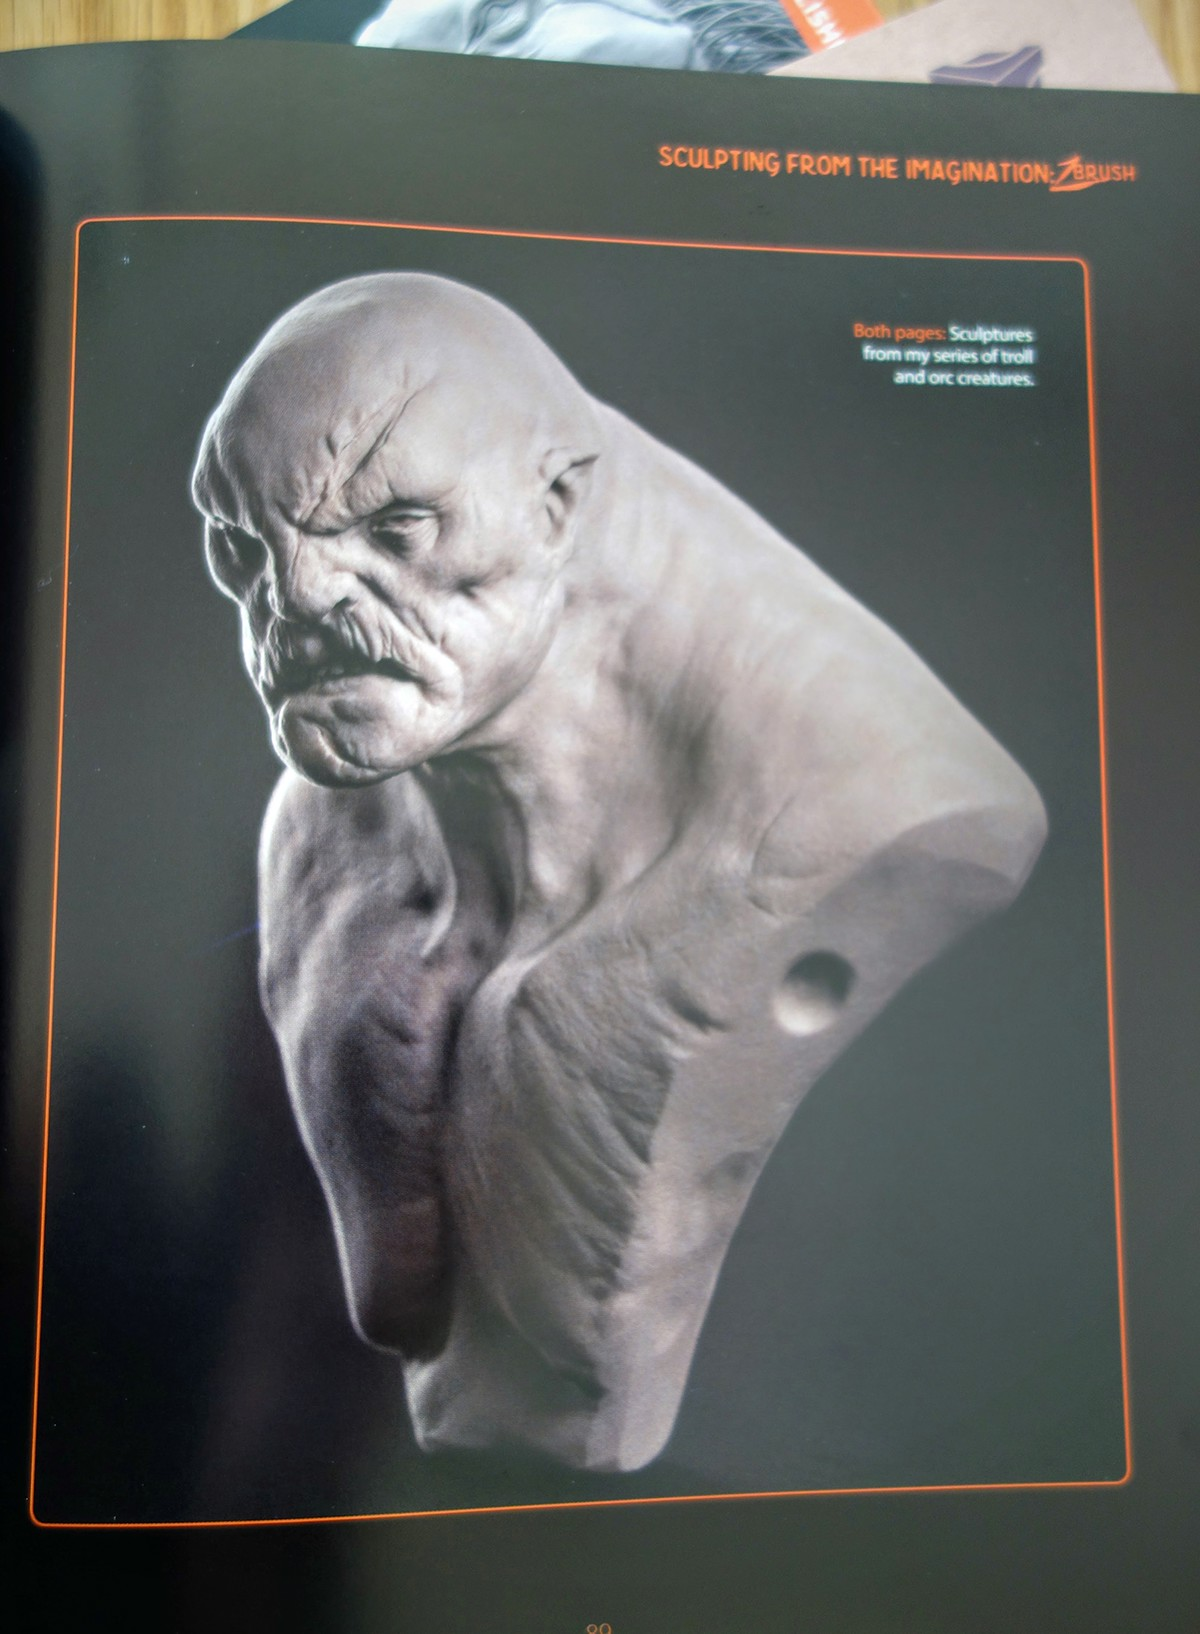 sculpting from the imagination zbrush